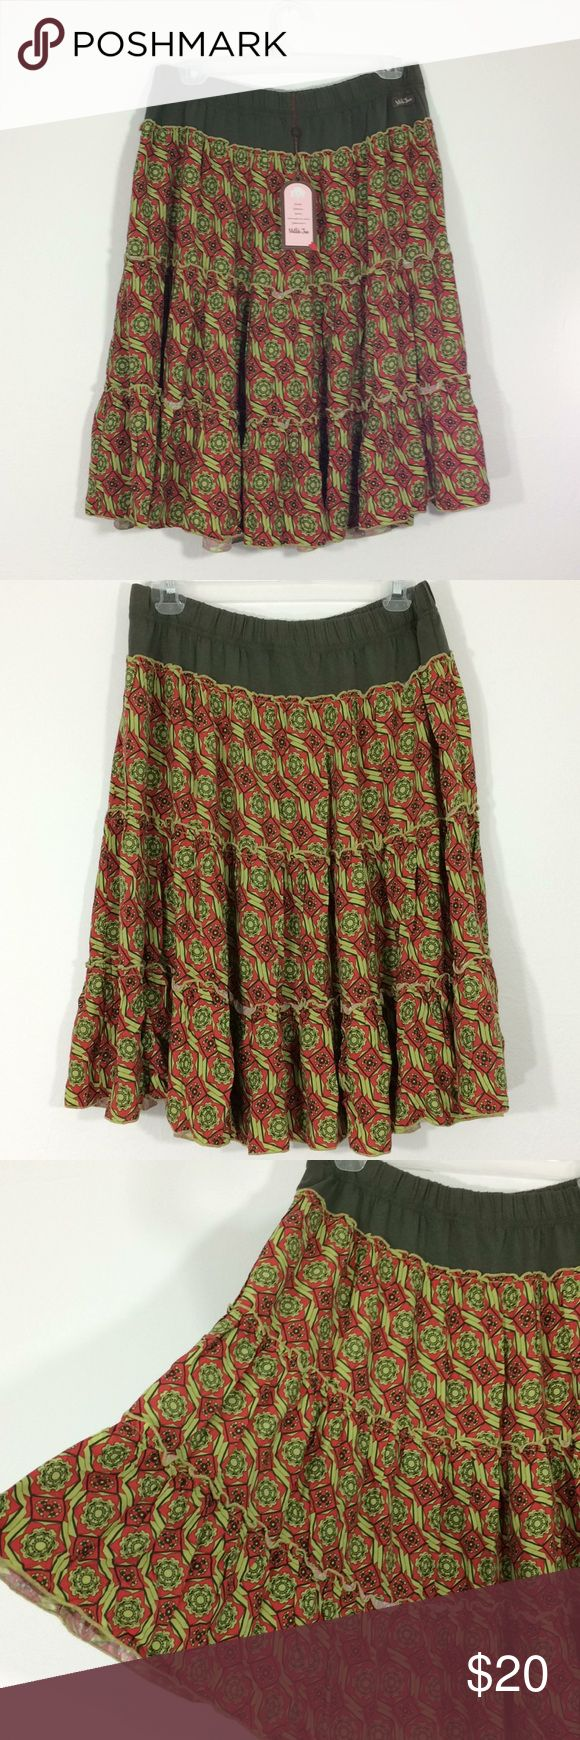 NWT Matilda Jane women's M tiered pattern skirt Absolutely lovely NWT Matilda Jane tiered skirt. Sz M Olive Waist with lime/orange/olive geometric pattern on full skirt. 100% Rayon. 100% comfort. Perfect with tank and sandals. Throw a shirt or jacket over for cooler nights. Ready for that summer concert/festival or seaside walk!🌸 Matilda Jane Skirts